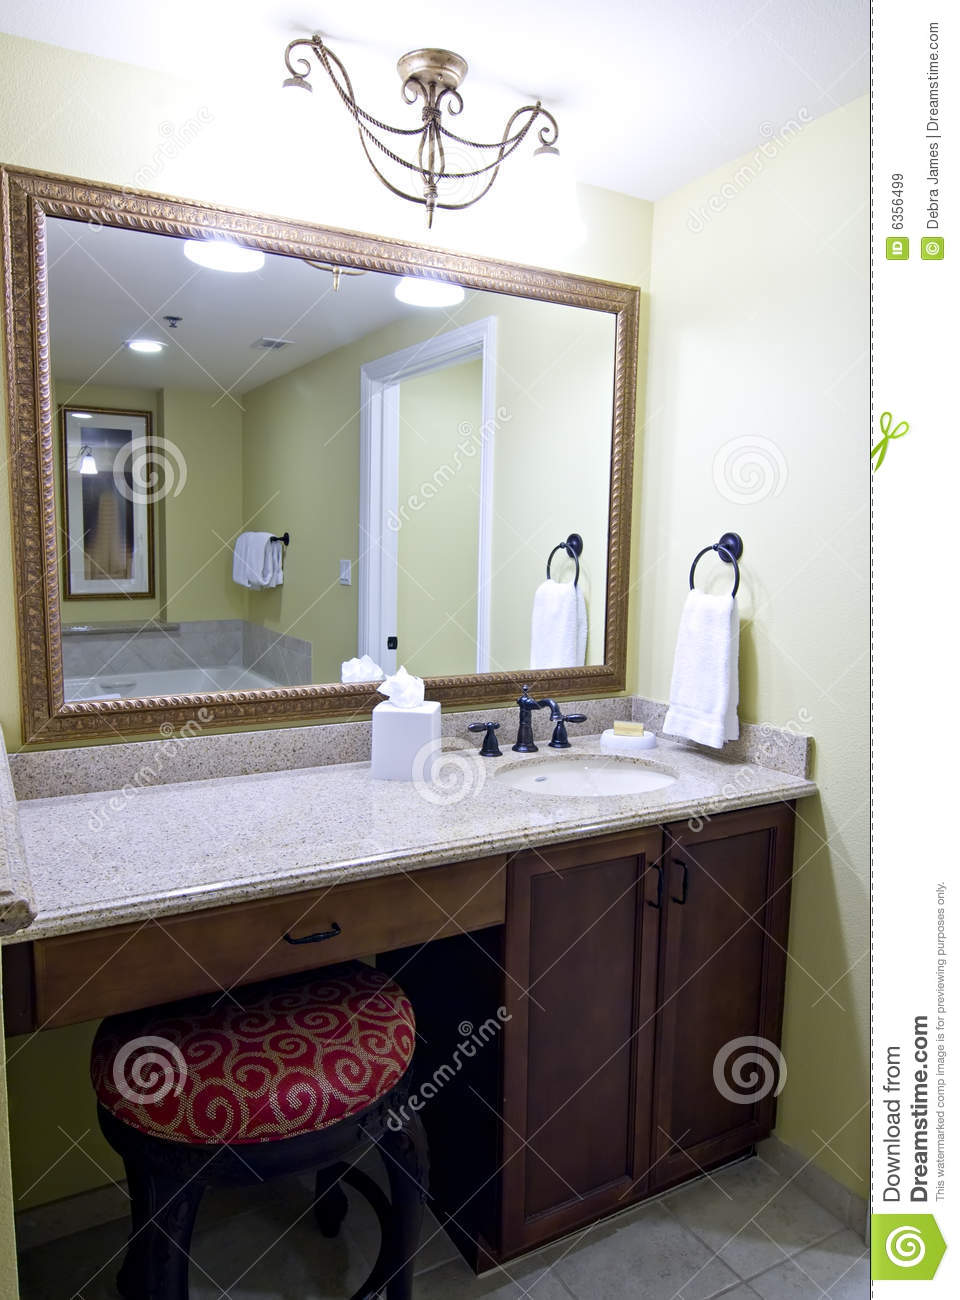 bathroom mirrors over vanity mirror above bathroom vanity stock image image 6356499 16300